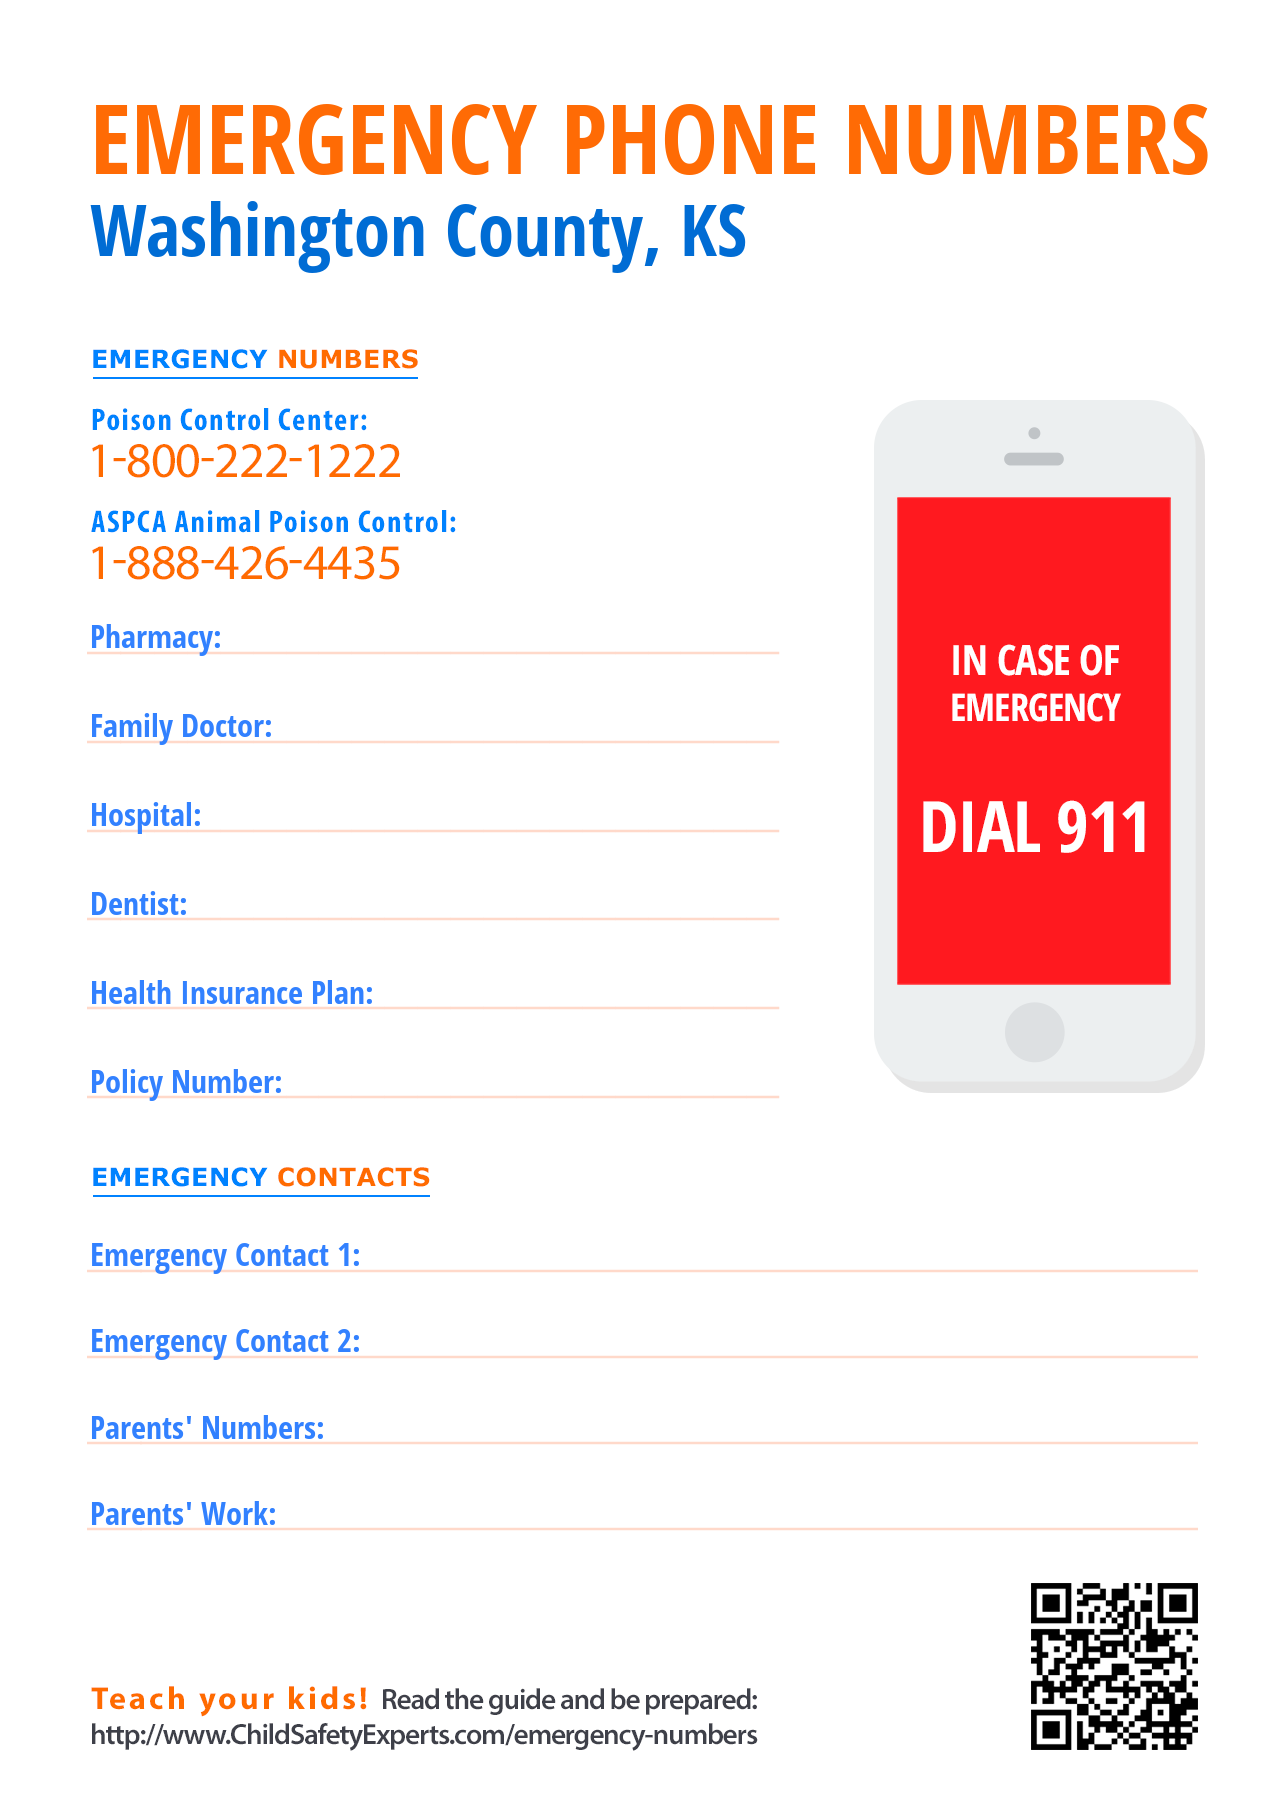 Important emergency phone numbers in Washington County, Kansas